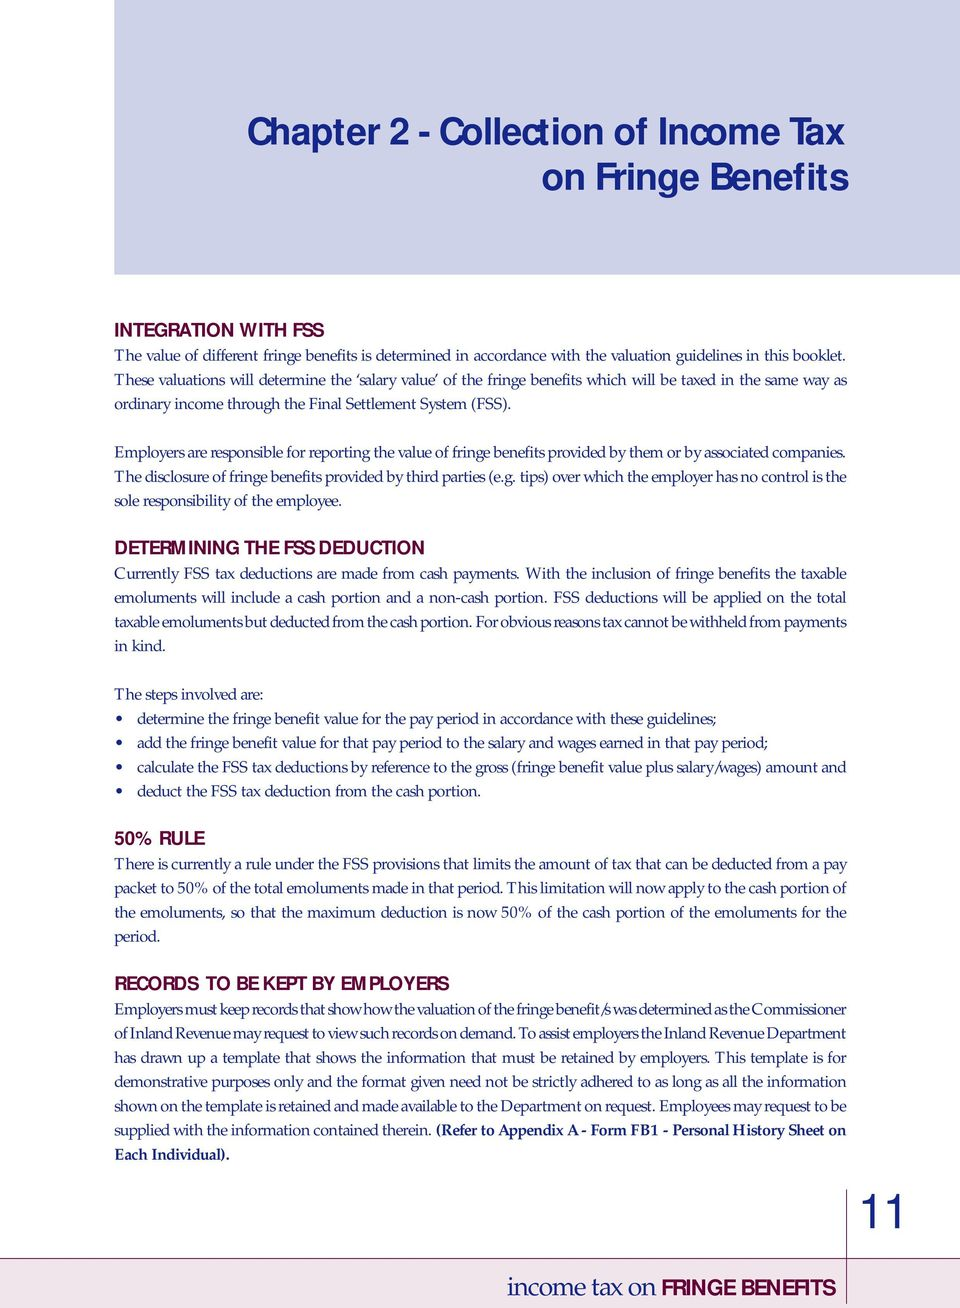 Employers are responsible for reporting the value of fringe benefits provided by them or by associated companies. The disclosure of fringe benefits provided by third parties (e.g. tips) over which the employer has no control is the sole responsibility of the employee.